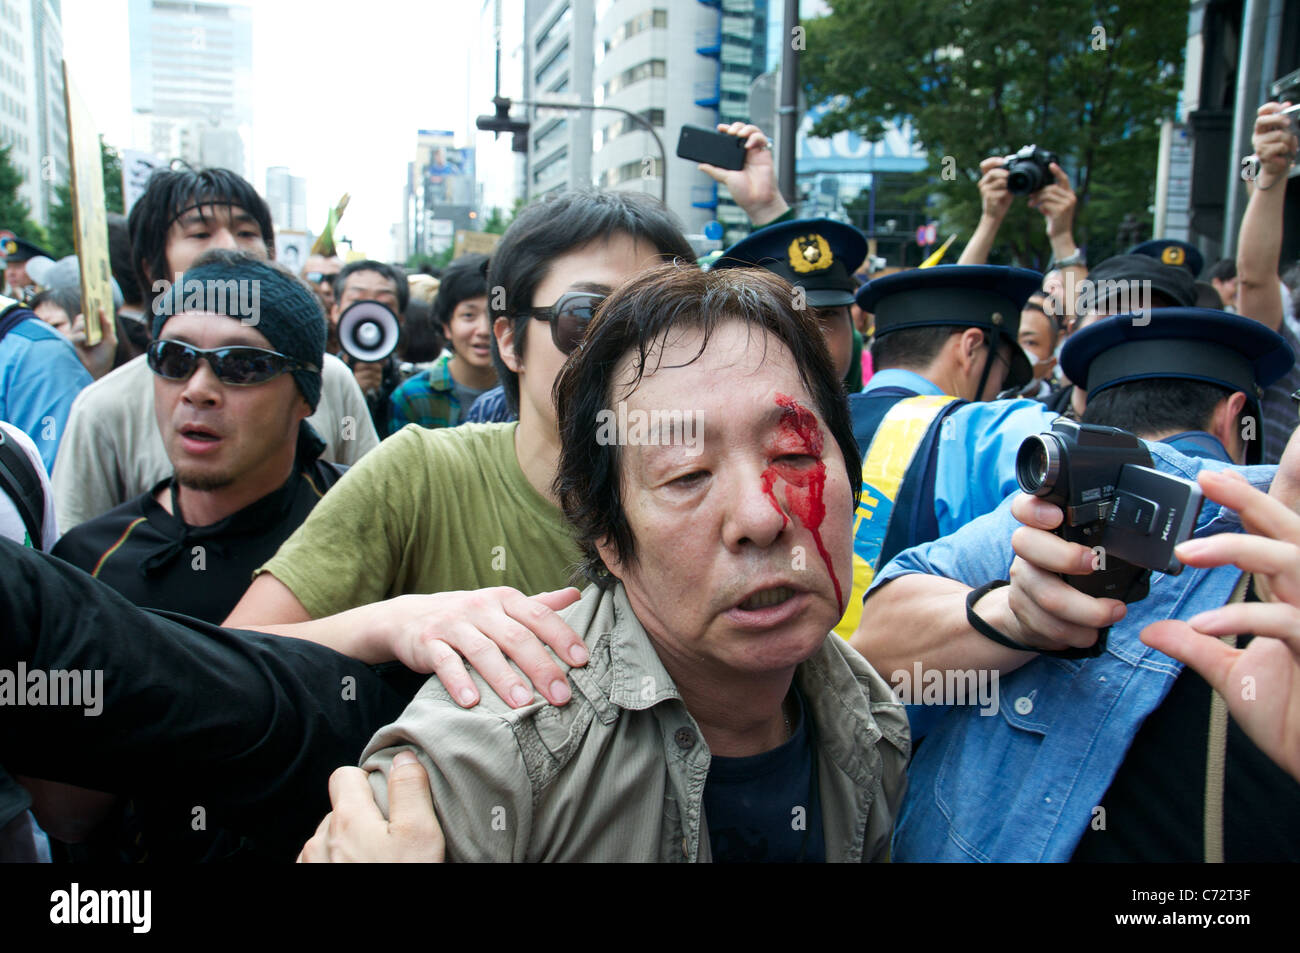 A man injured in a scuffle with Police is cared for by fellow protesters at an Anti-Nuclear protest on the 6 month - Stock Image